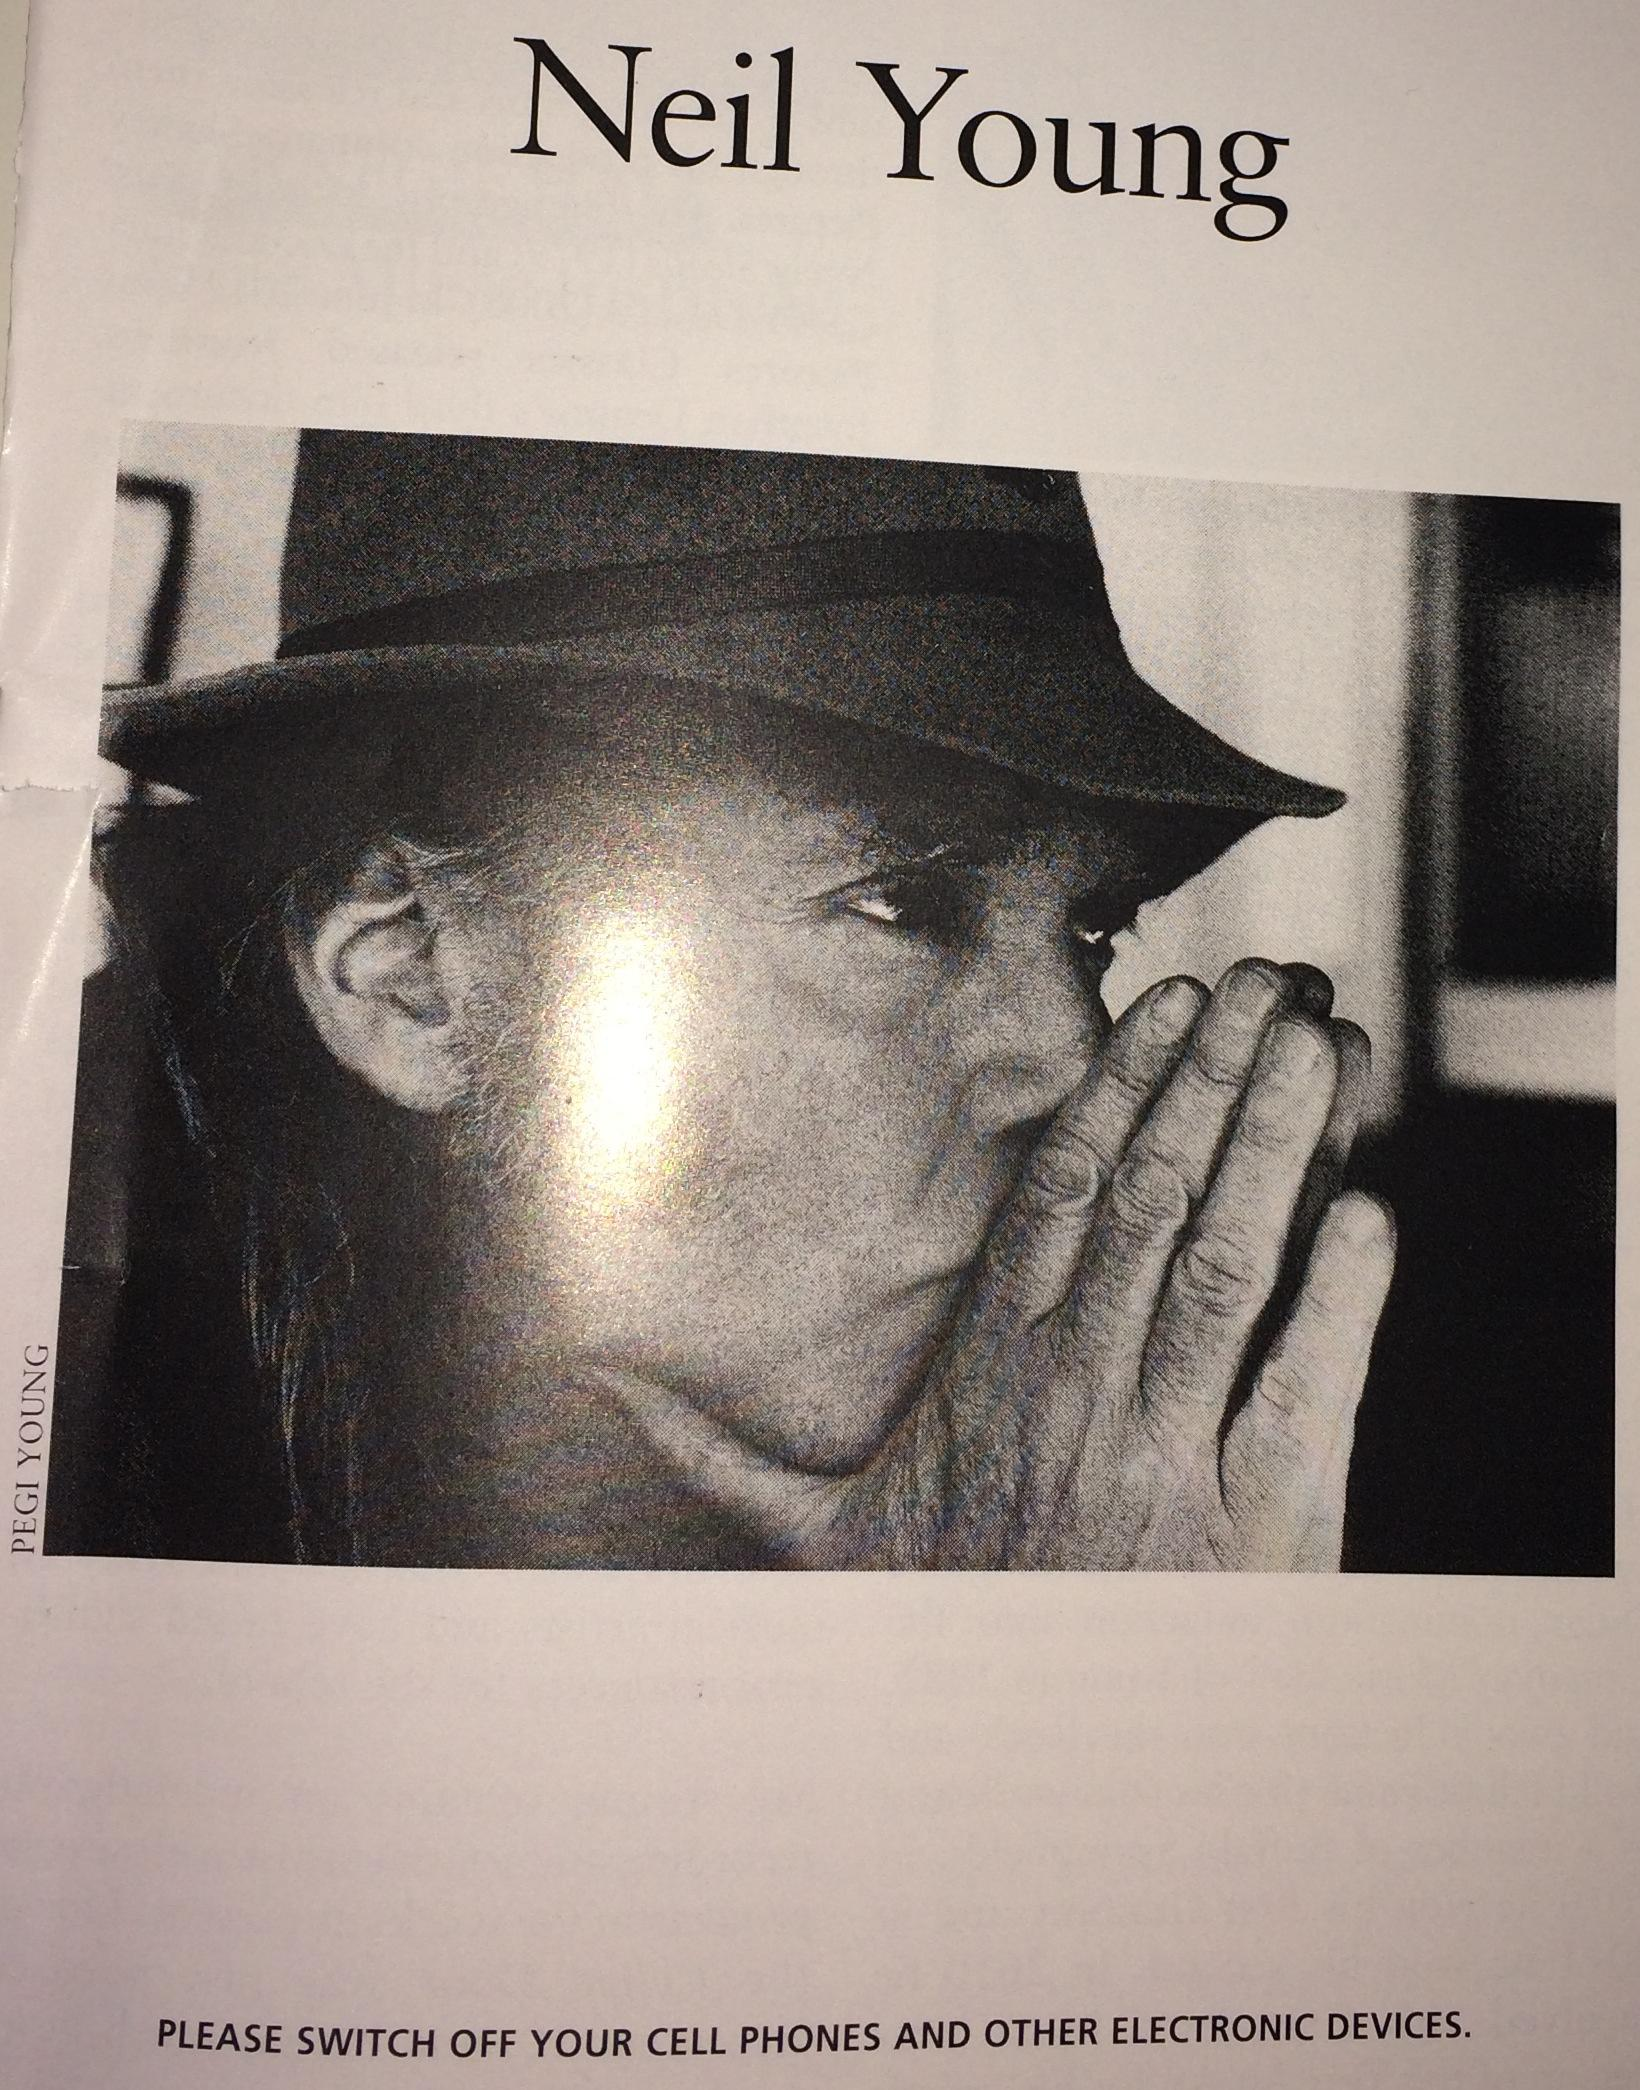 Page from the Neil Young Carnegie Hall Playbill showing the often ignored request to turn off cell phones and other electronic devices.